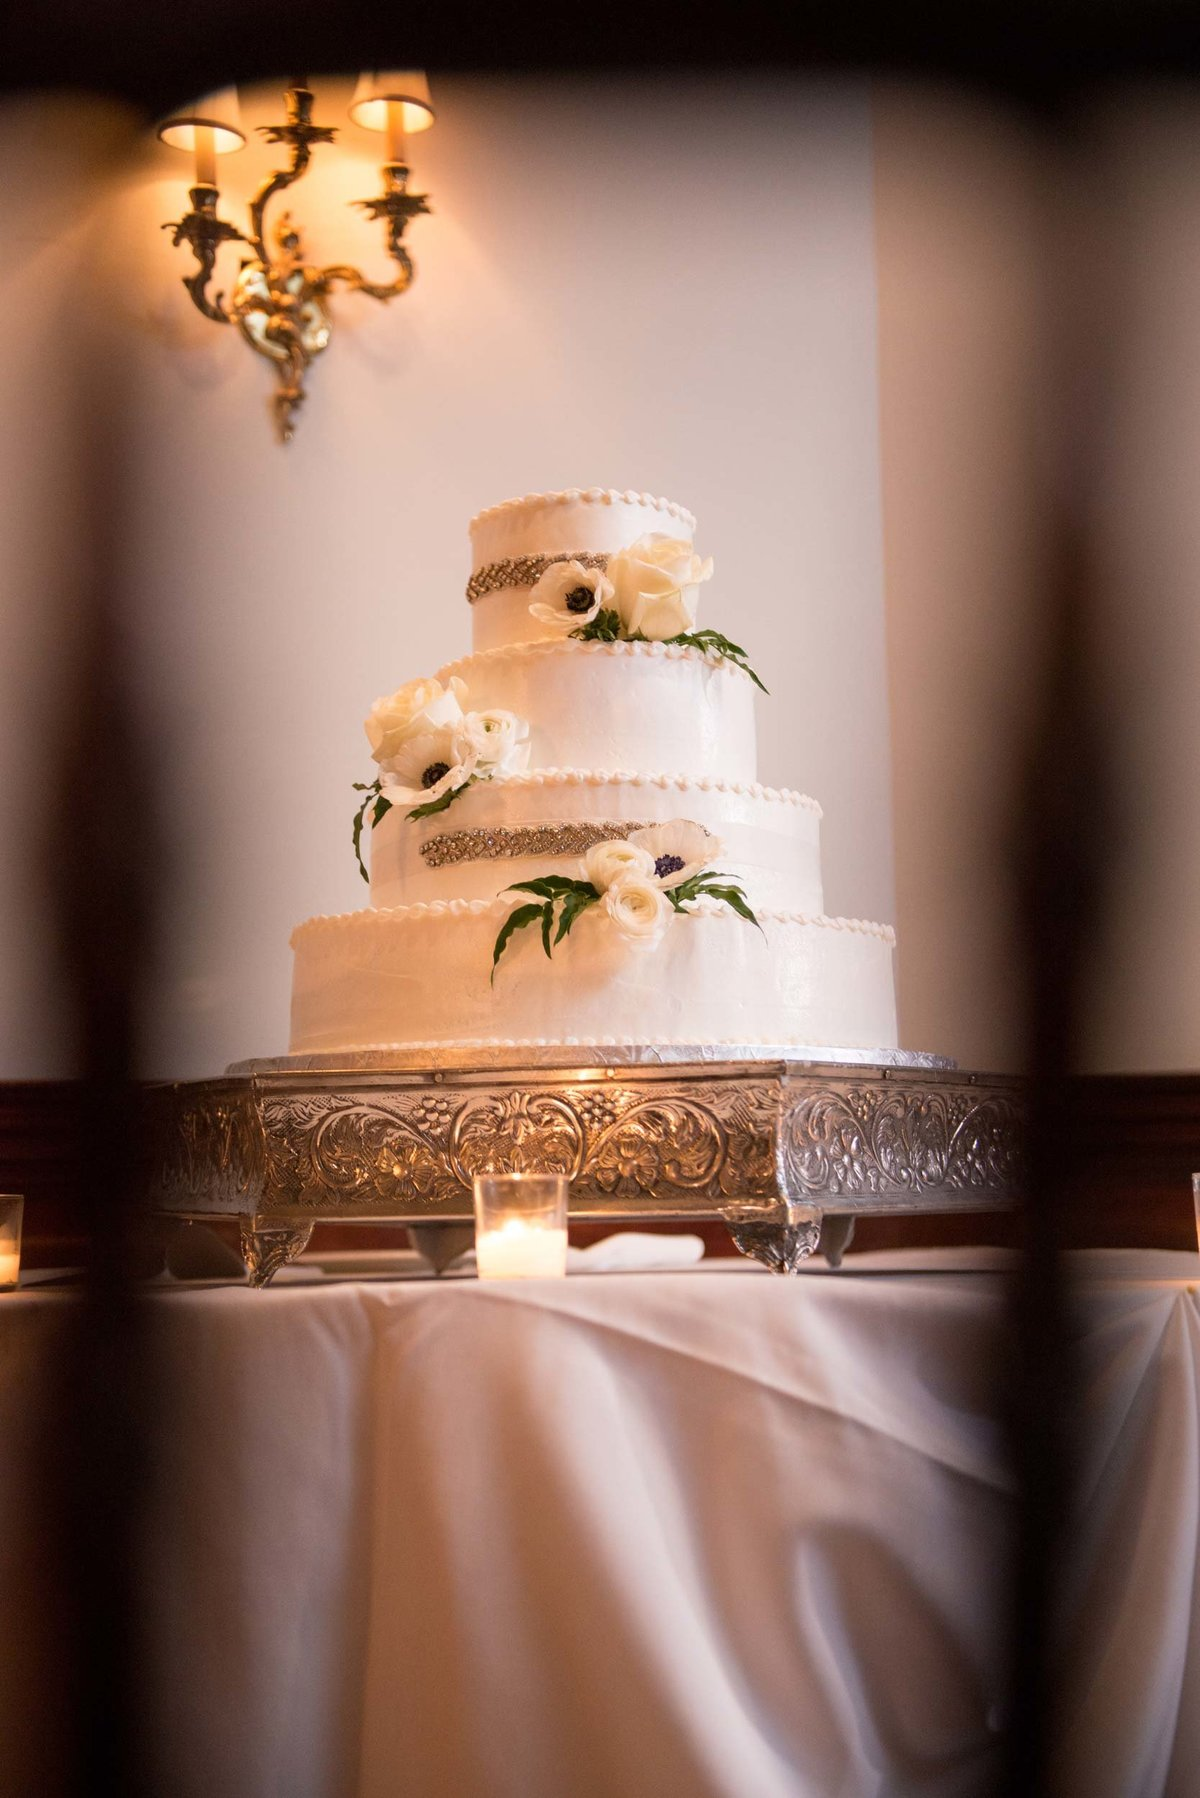 Wedding cake from The Mansion at Oyster Bay